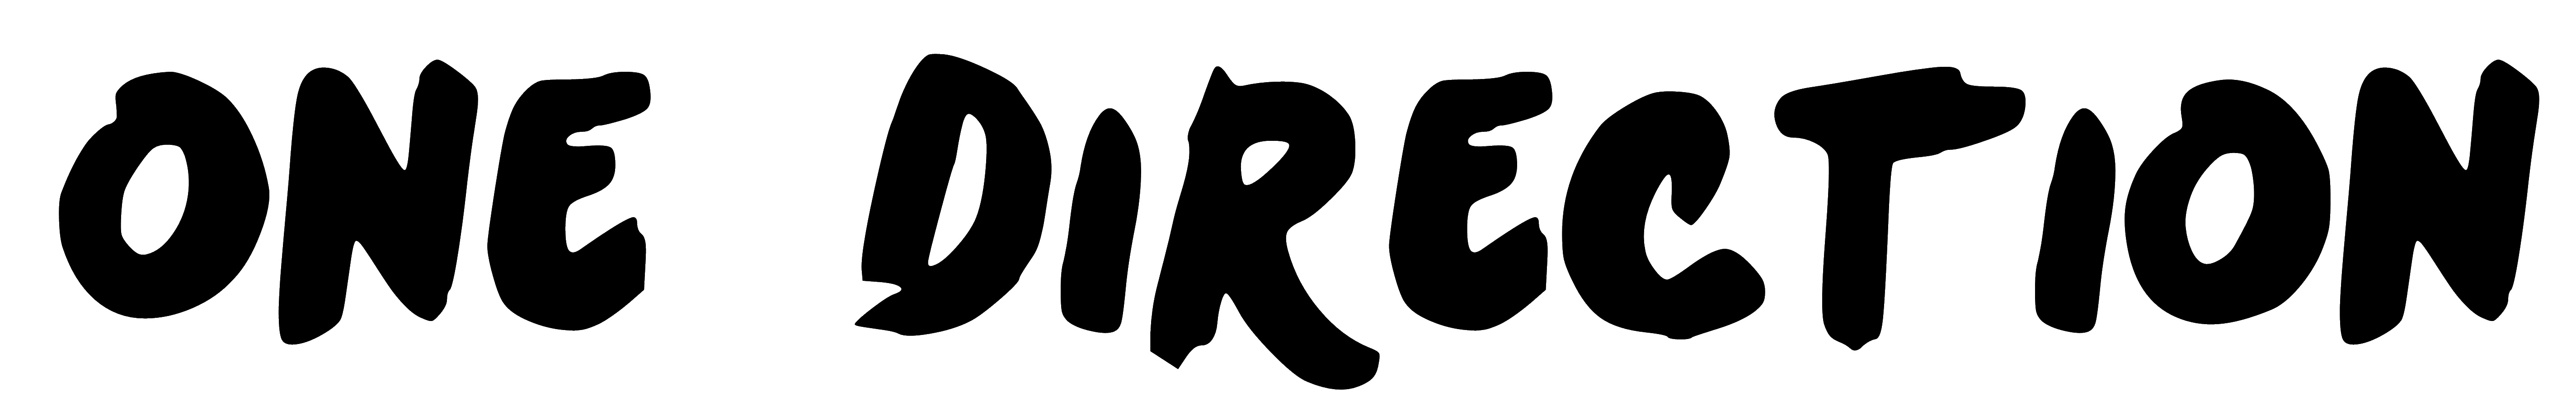 displaying 16 gt images for one direction logo font